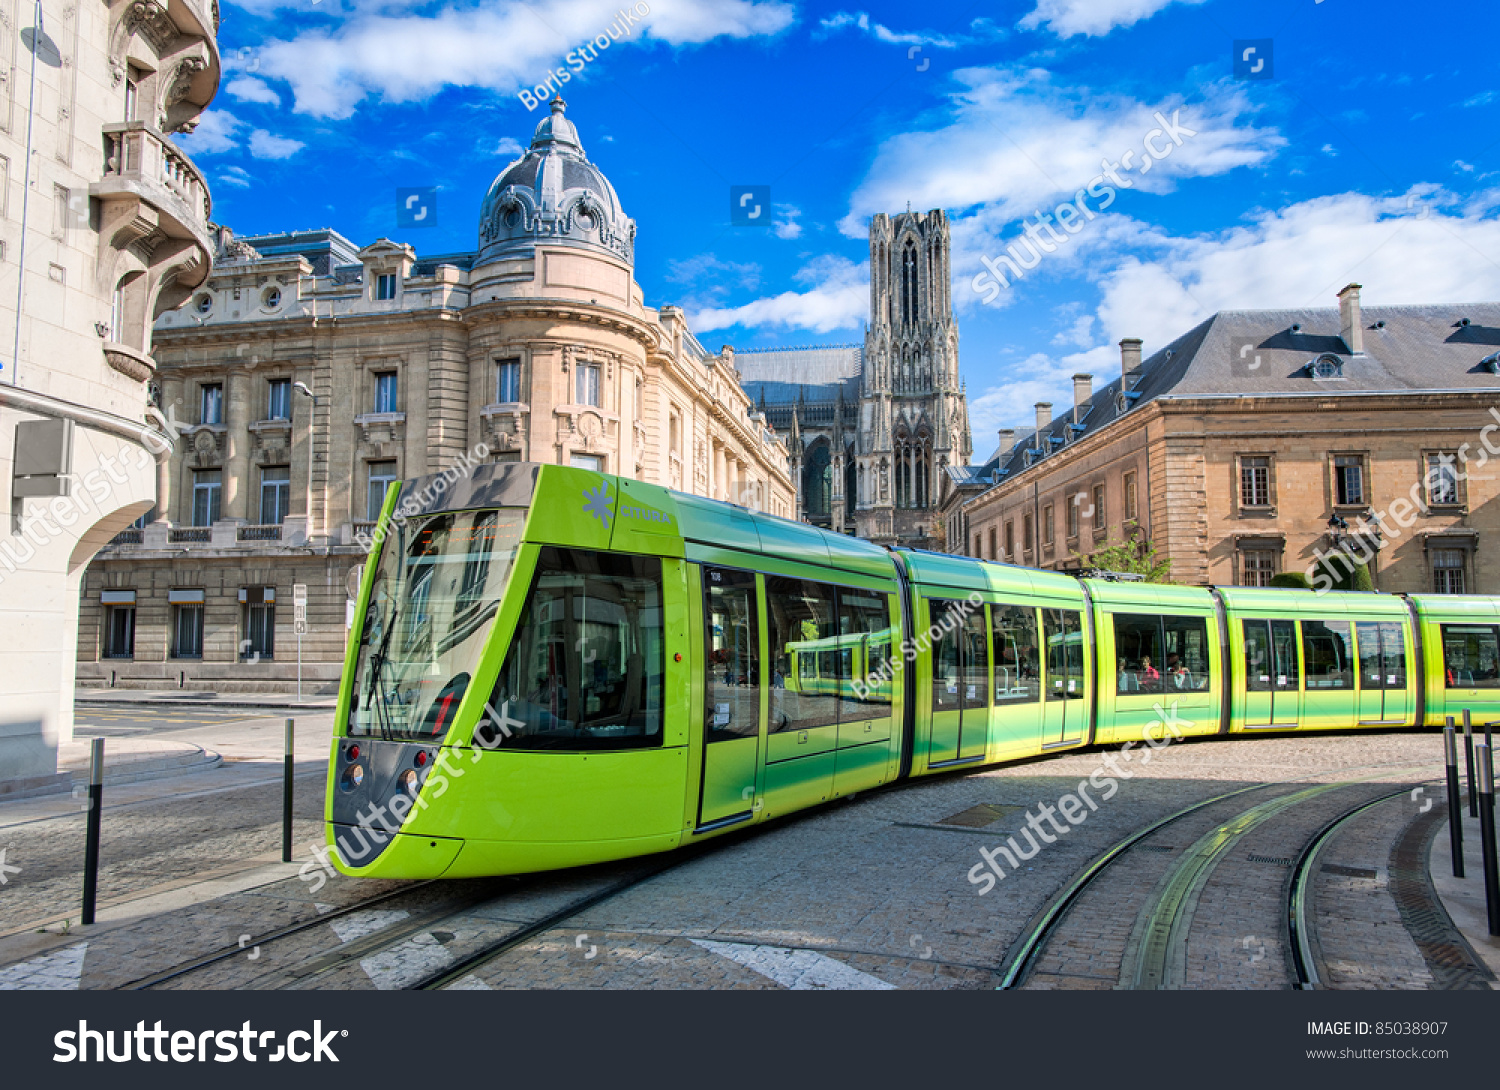 tram on streets reims france stock photo 85038907 shutterstock. Black Bedroom Furniture Sets. Home Design Ideas